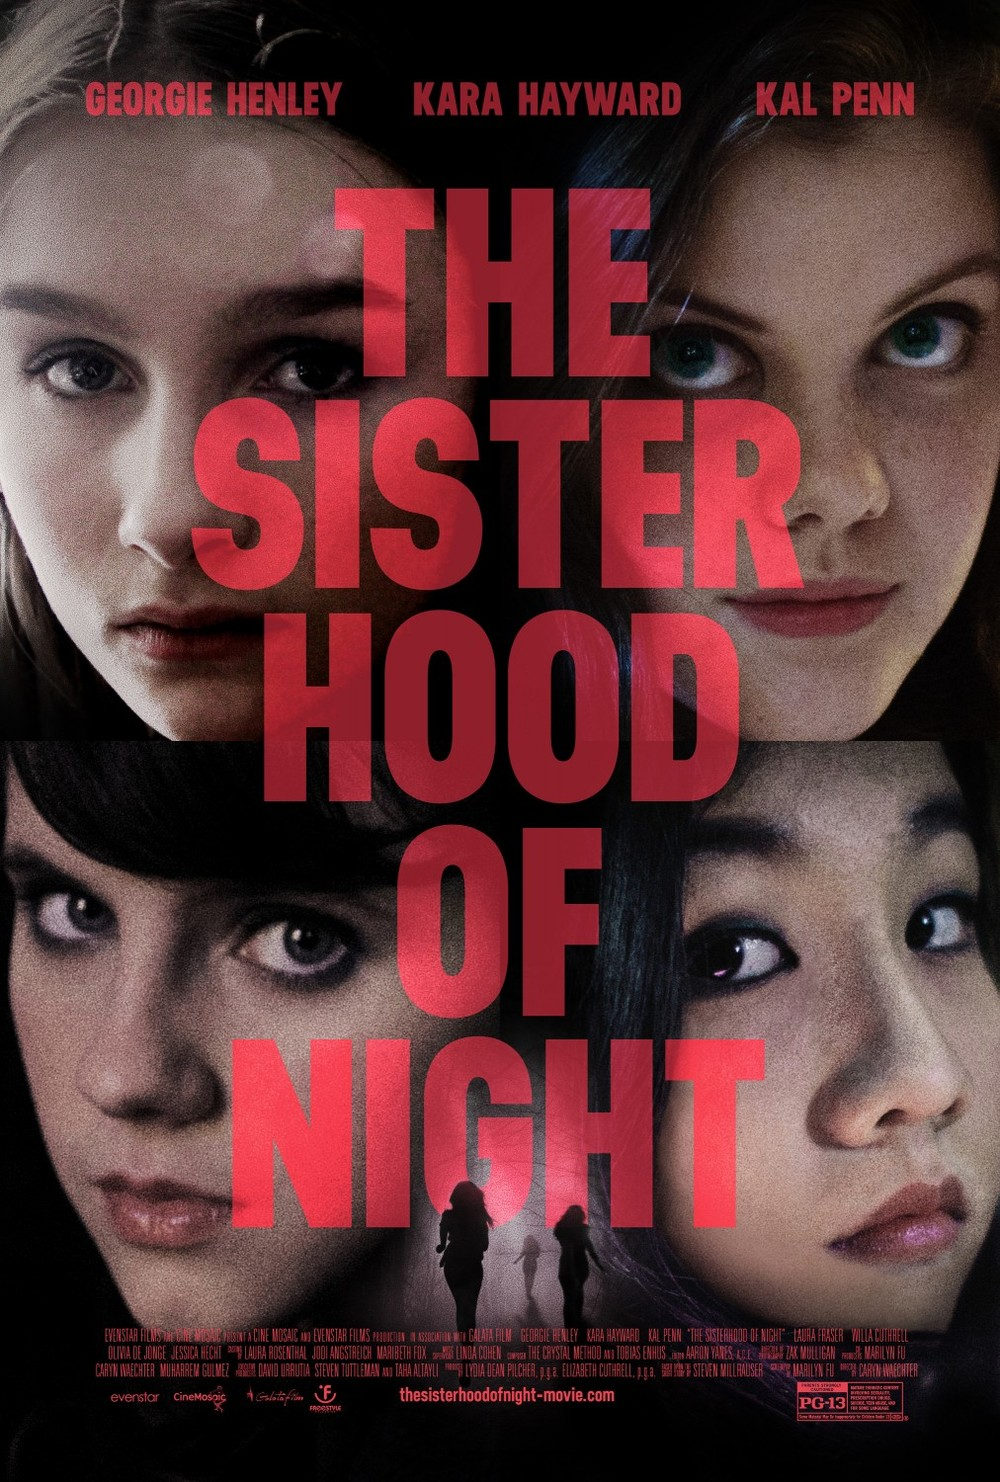 Is it Sister Hood or Sisterhood? Who cares.